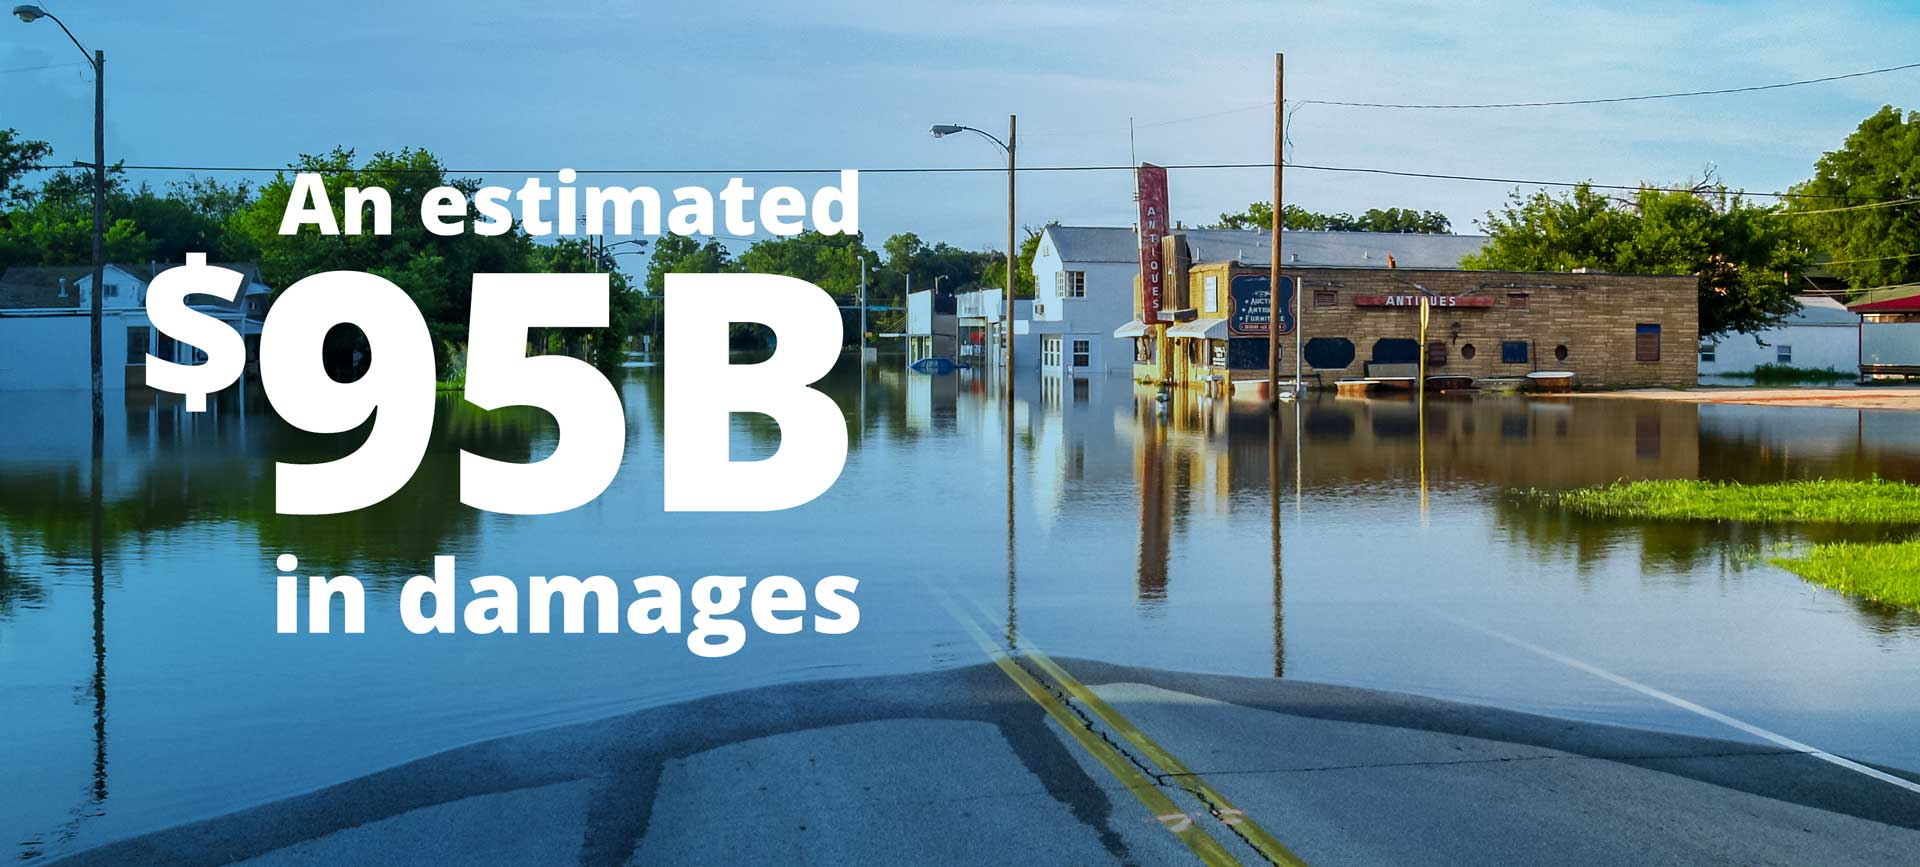 An estimated $95B in damages